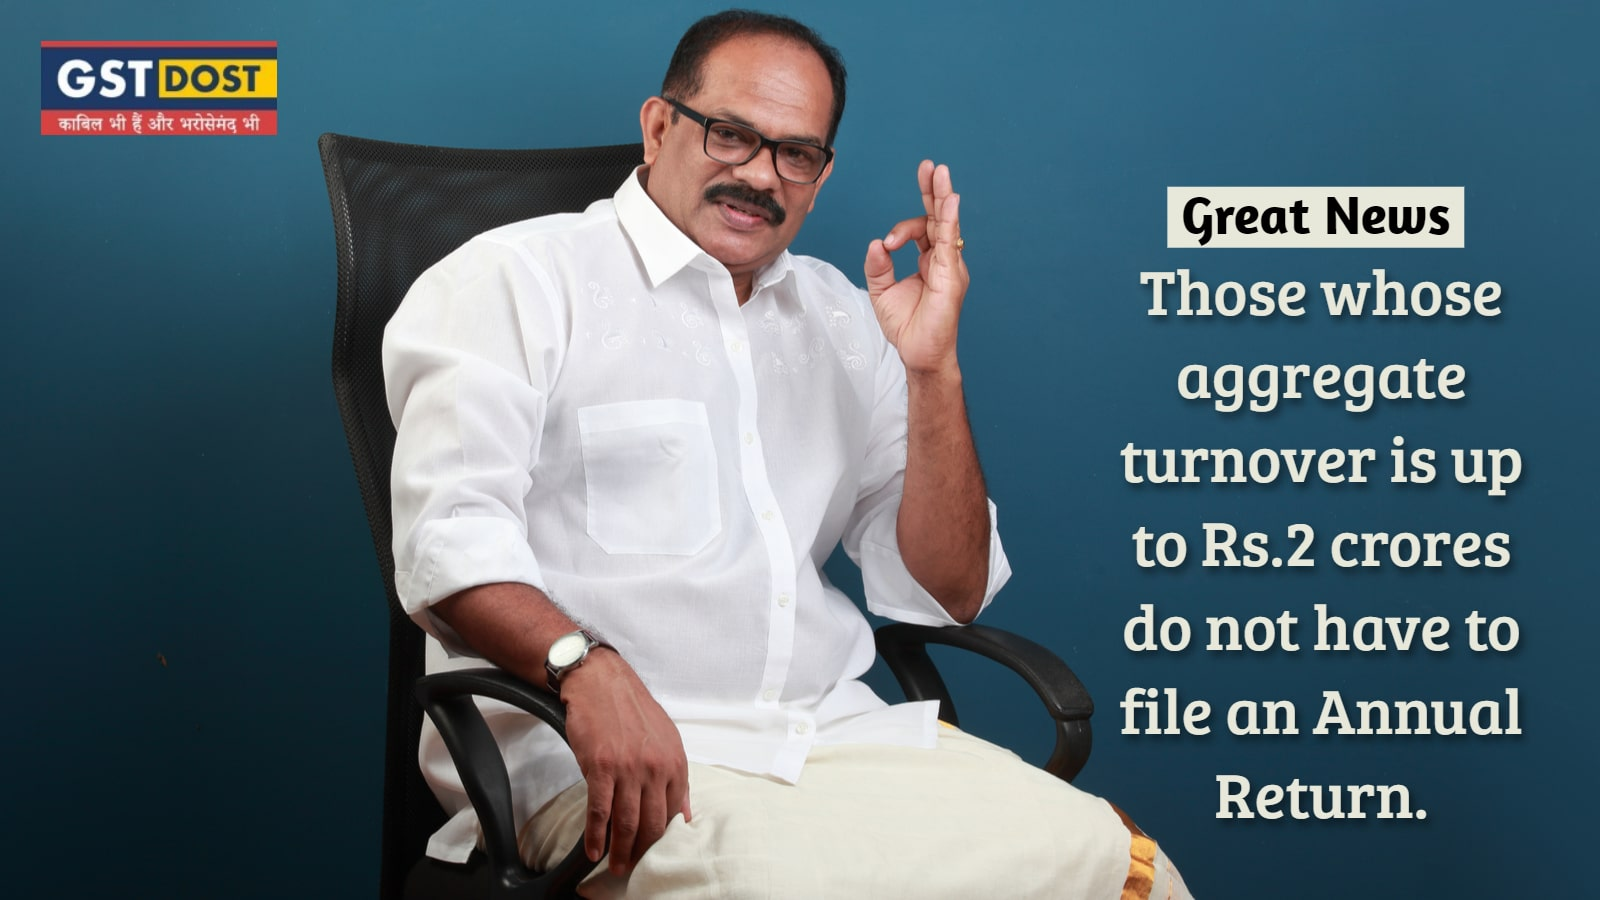 Those whose aggregate turnover is up to Rs.2 crores do not have to file an Annual Return.